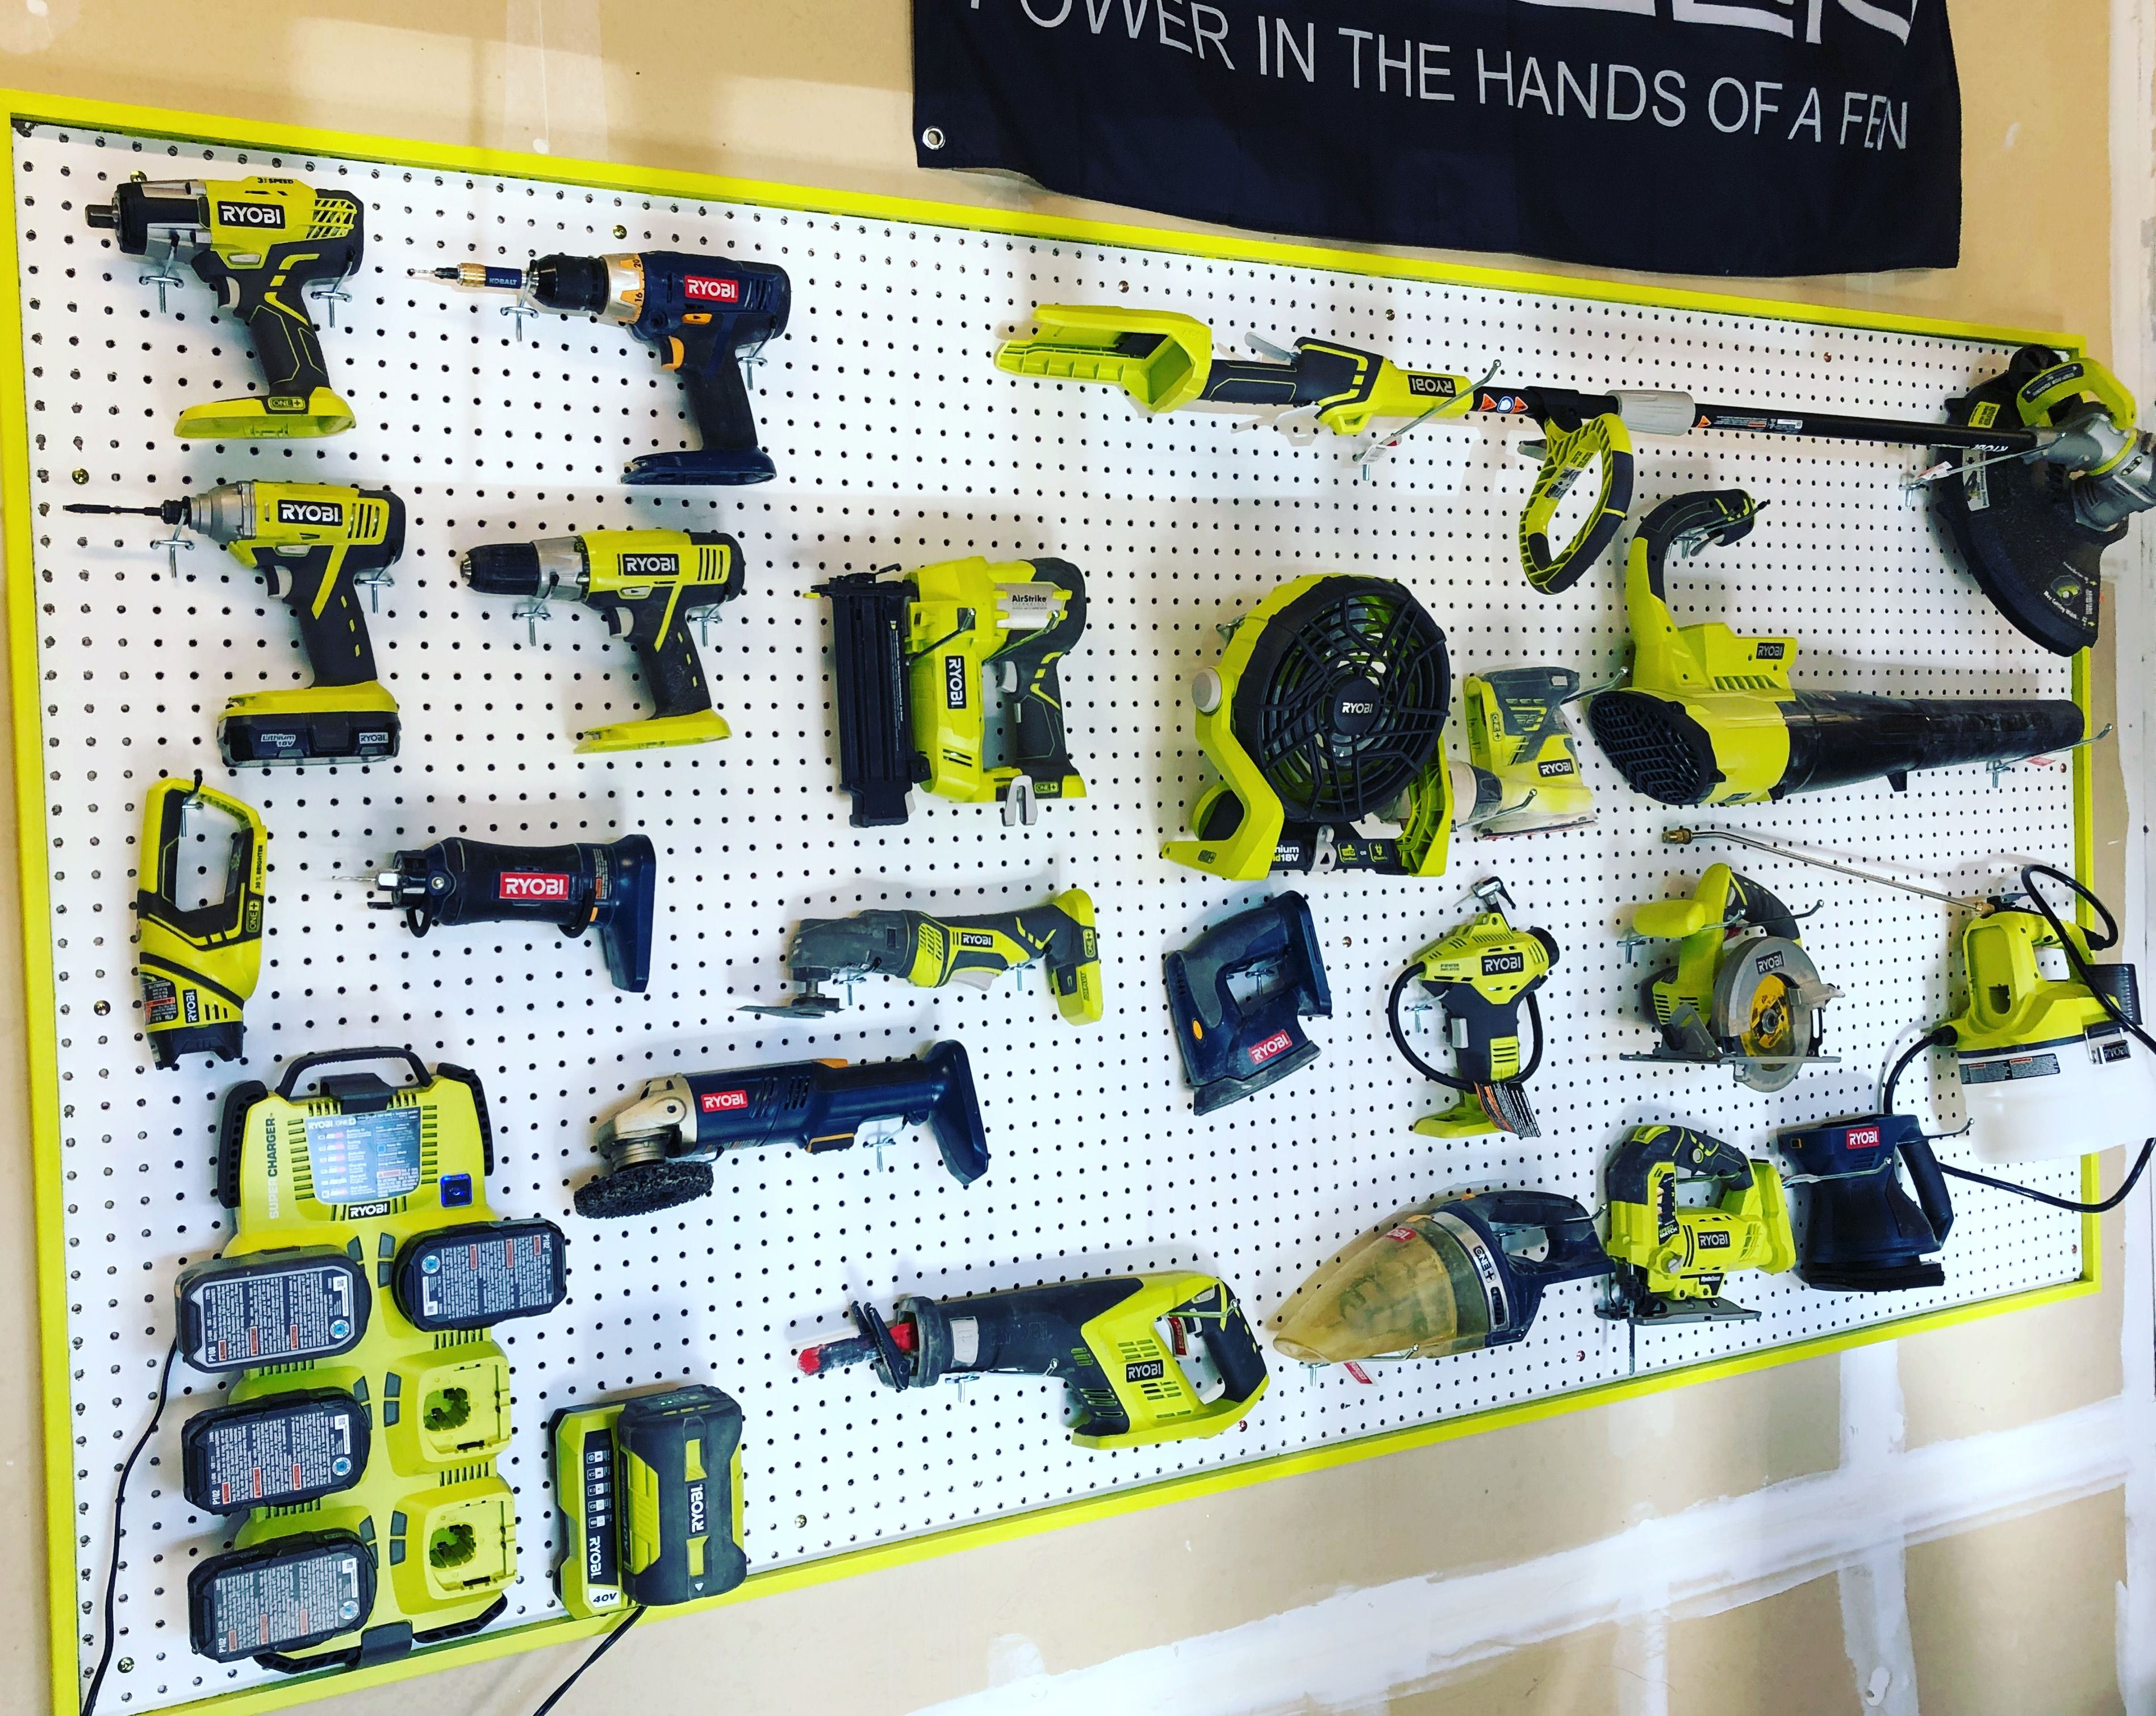 Ryobi Tool Wall Organizer I Used 4x8 Peg Board On Top Of 1x3 Furring Strips I Then Used 1x2 To Frame It I Took A Tool Into Peg Board Wall